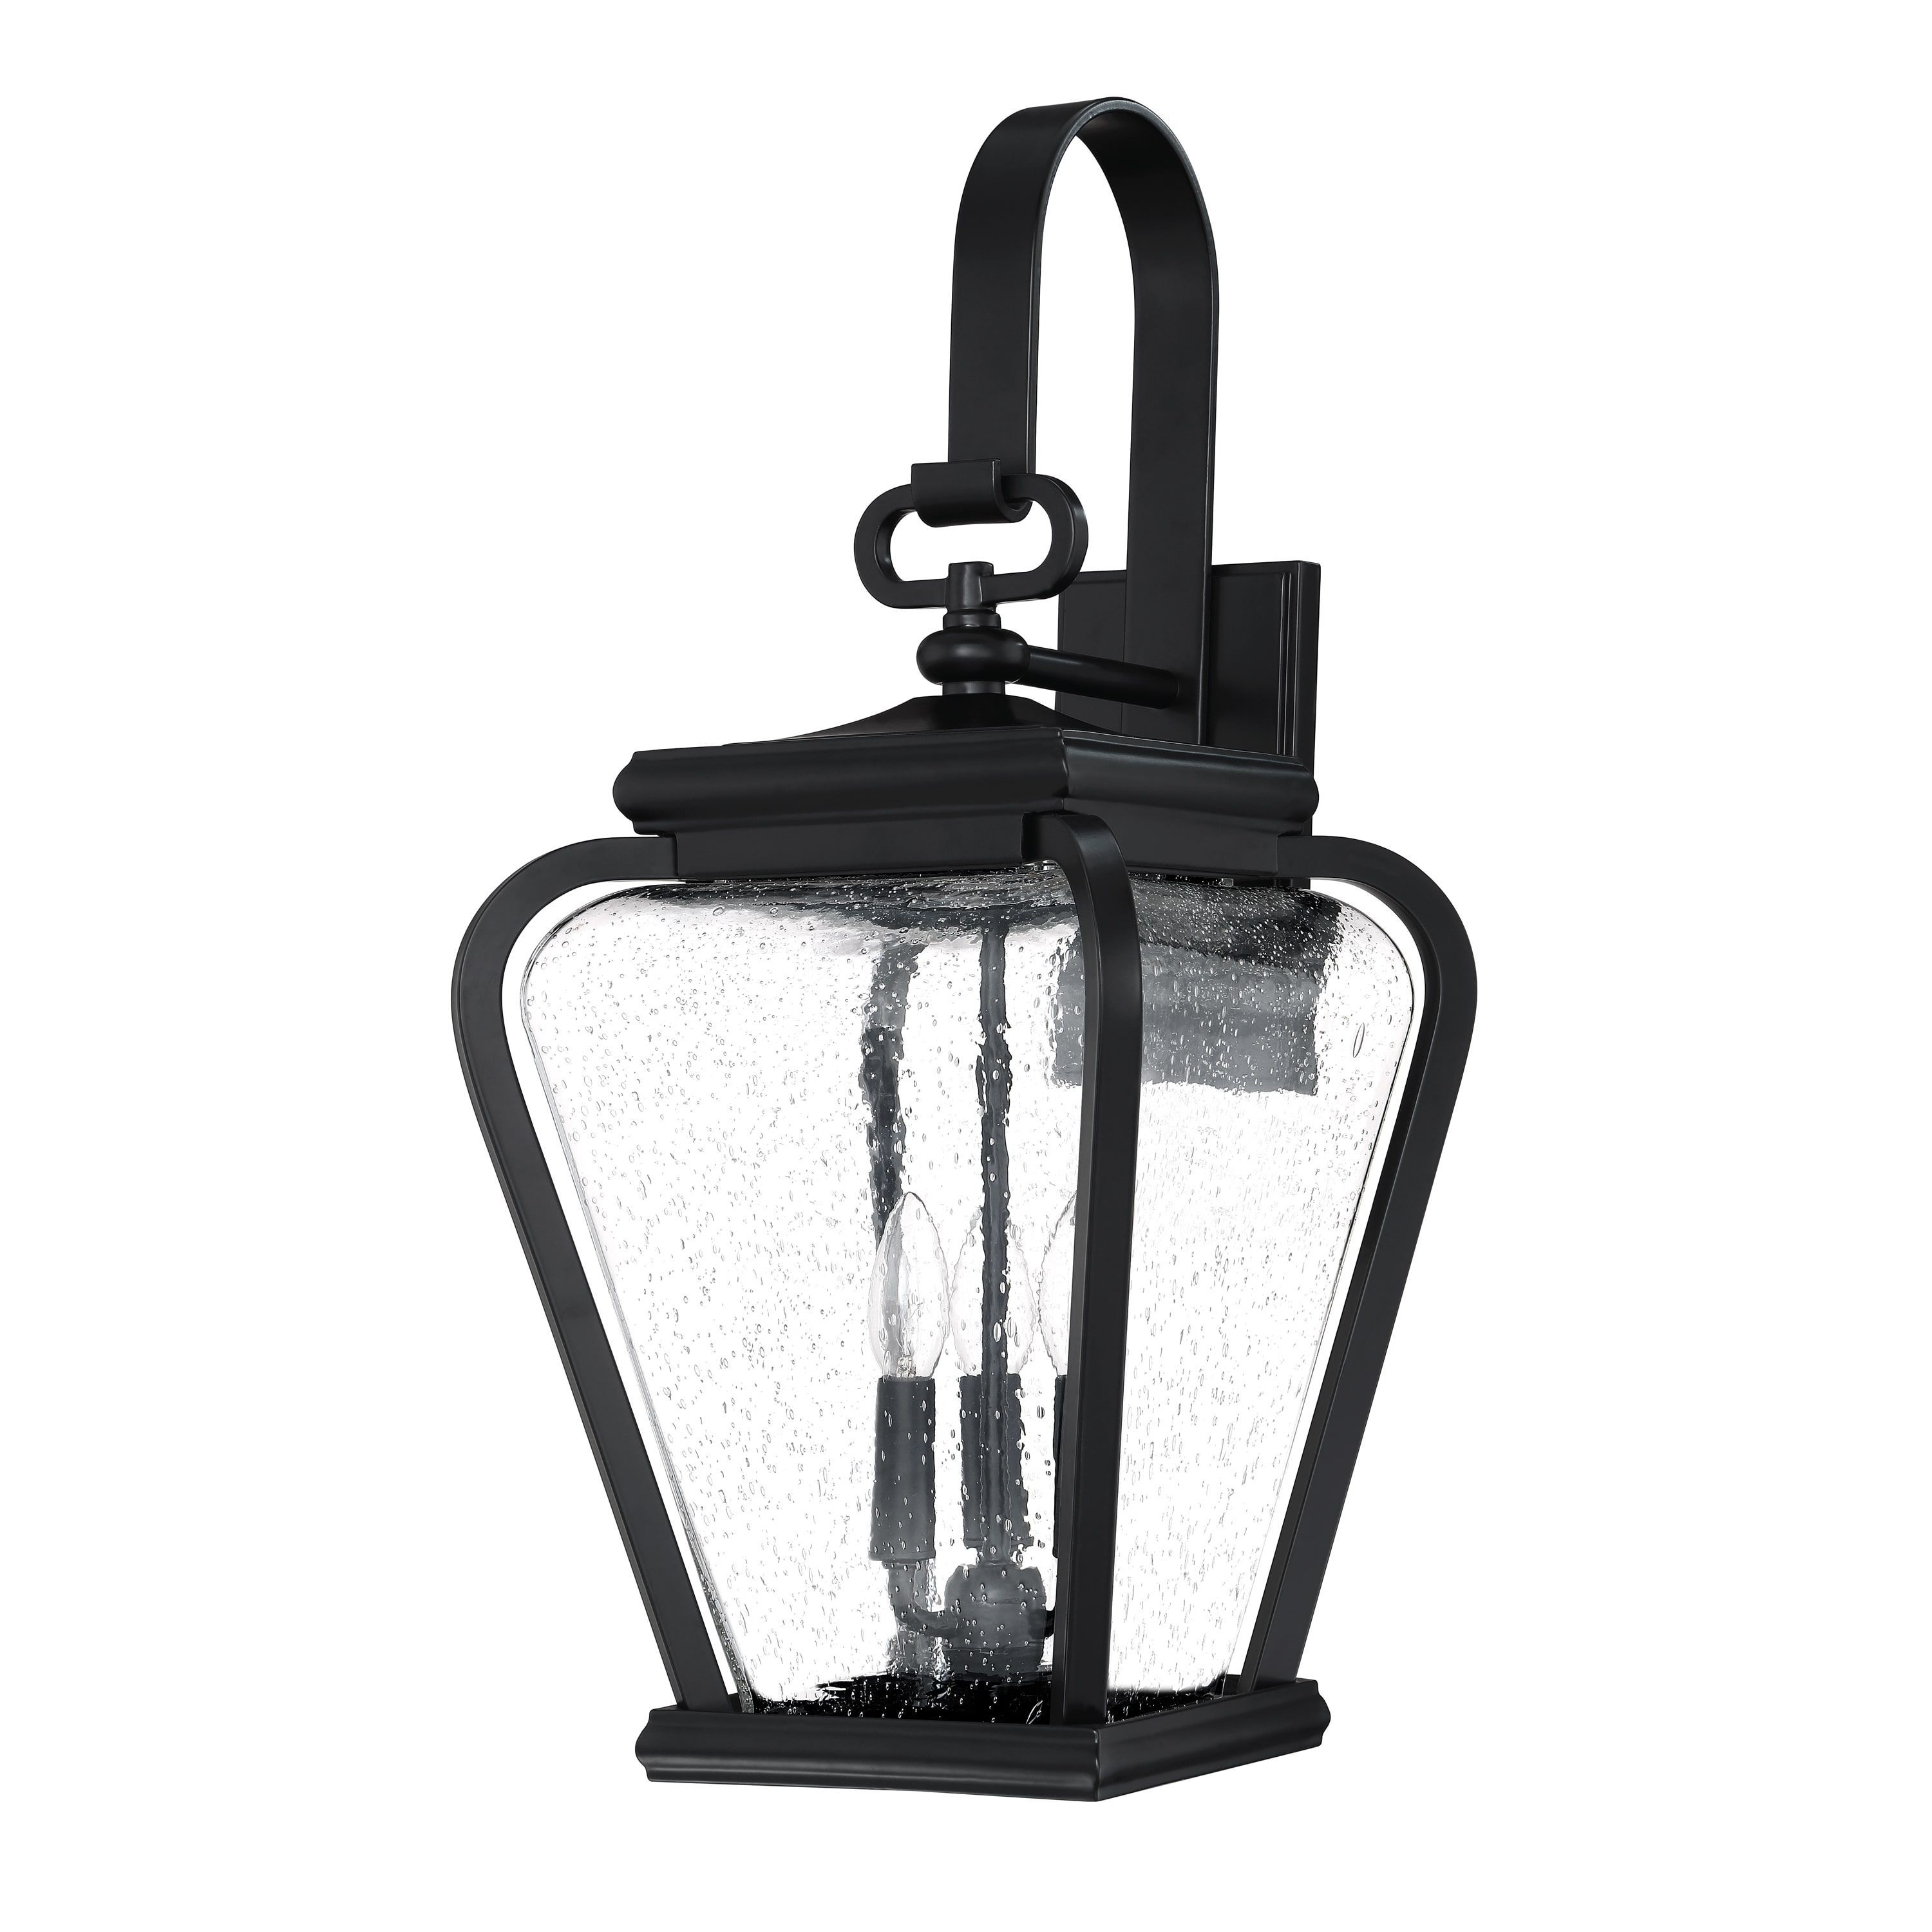 Quoizel Province Mystic Black Jumbo Outdoor Wall Lantern (Extends Intended For Well Liked Jumbo Outdoor Lanterns (View 20 of 20)